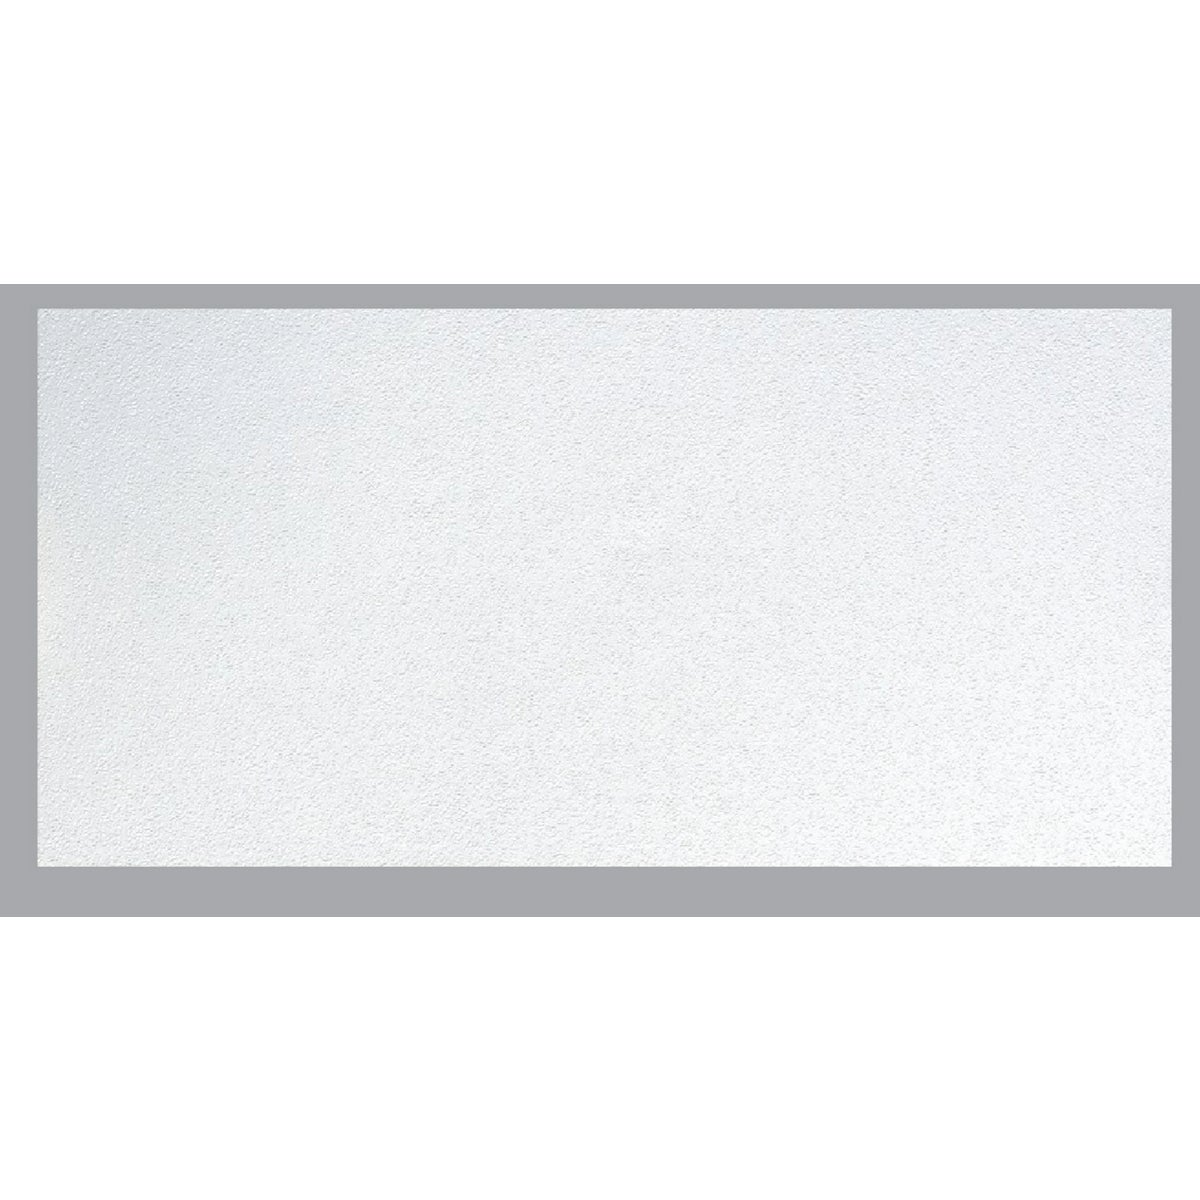 2X4 FISSURD CEILING TILE - BVFIS by Bldg Prod Canada Cor